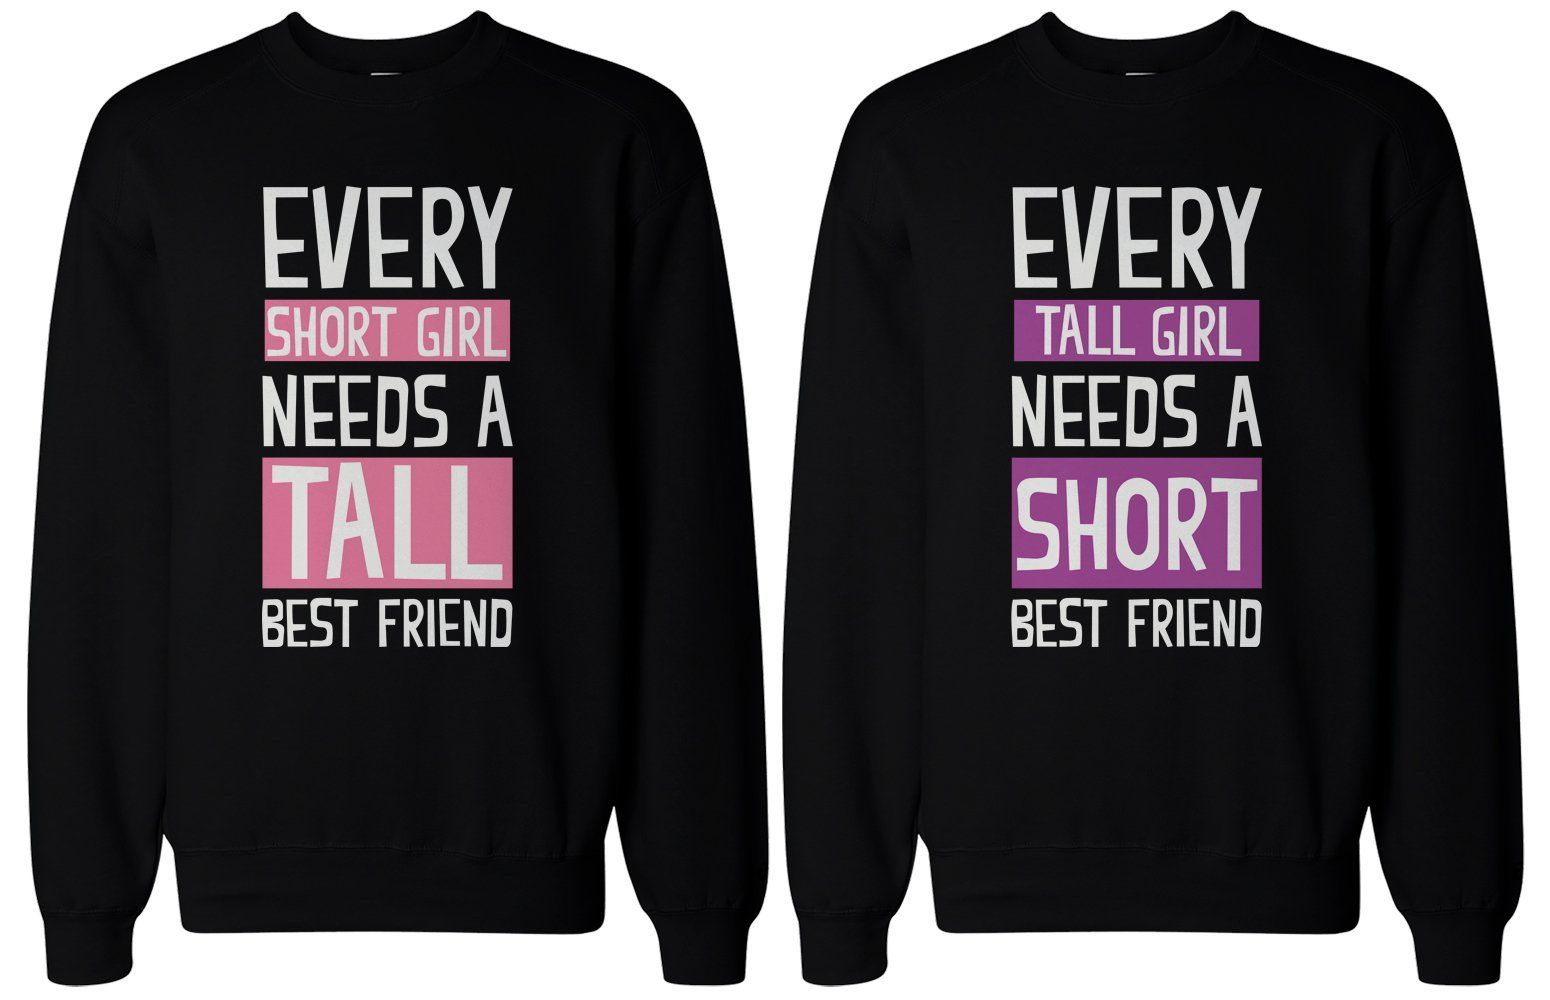 Bff gifts tall and short best friend matching